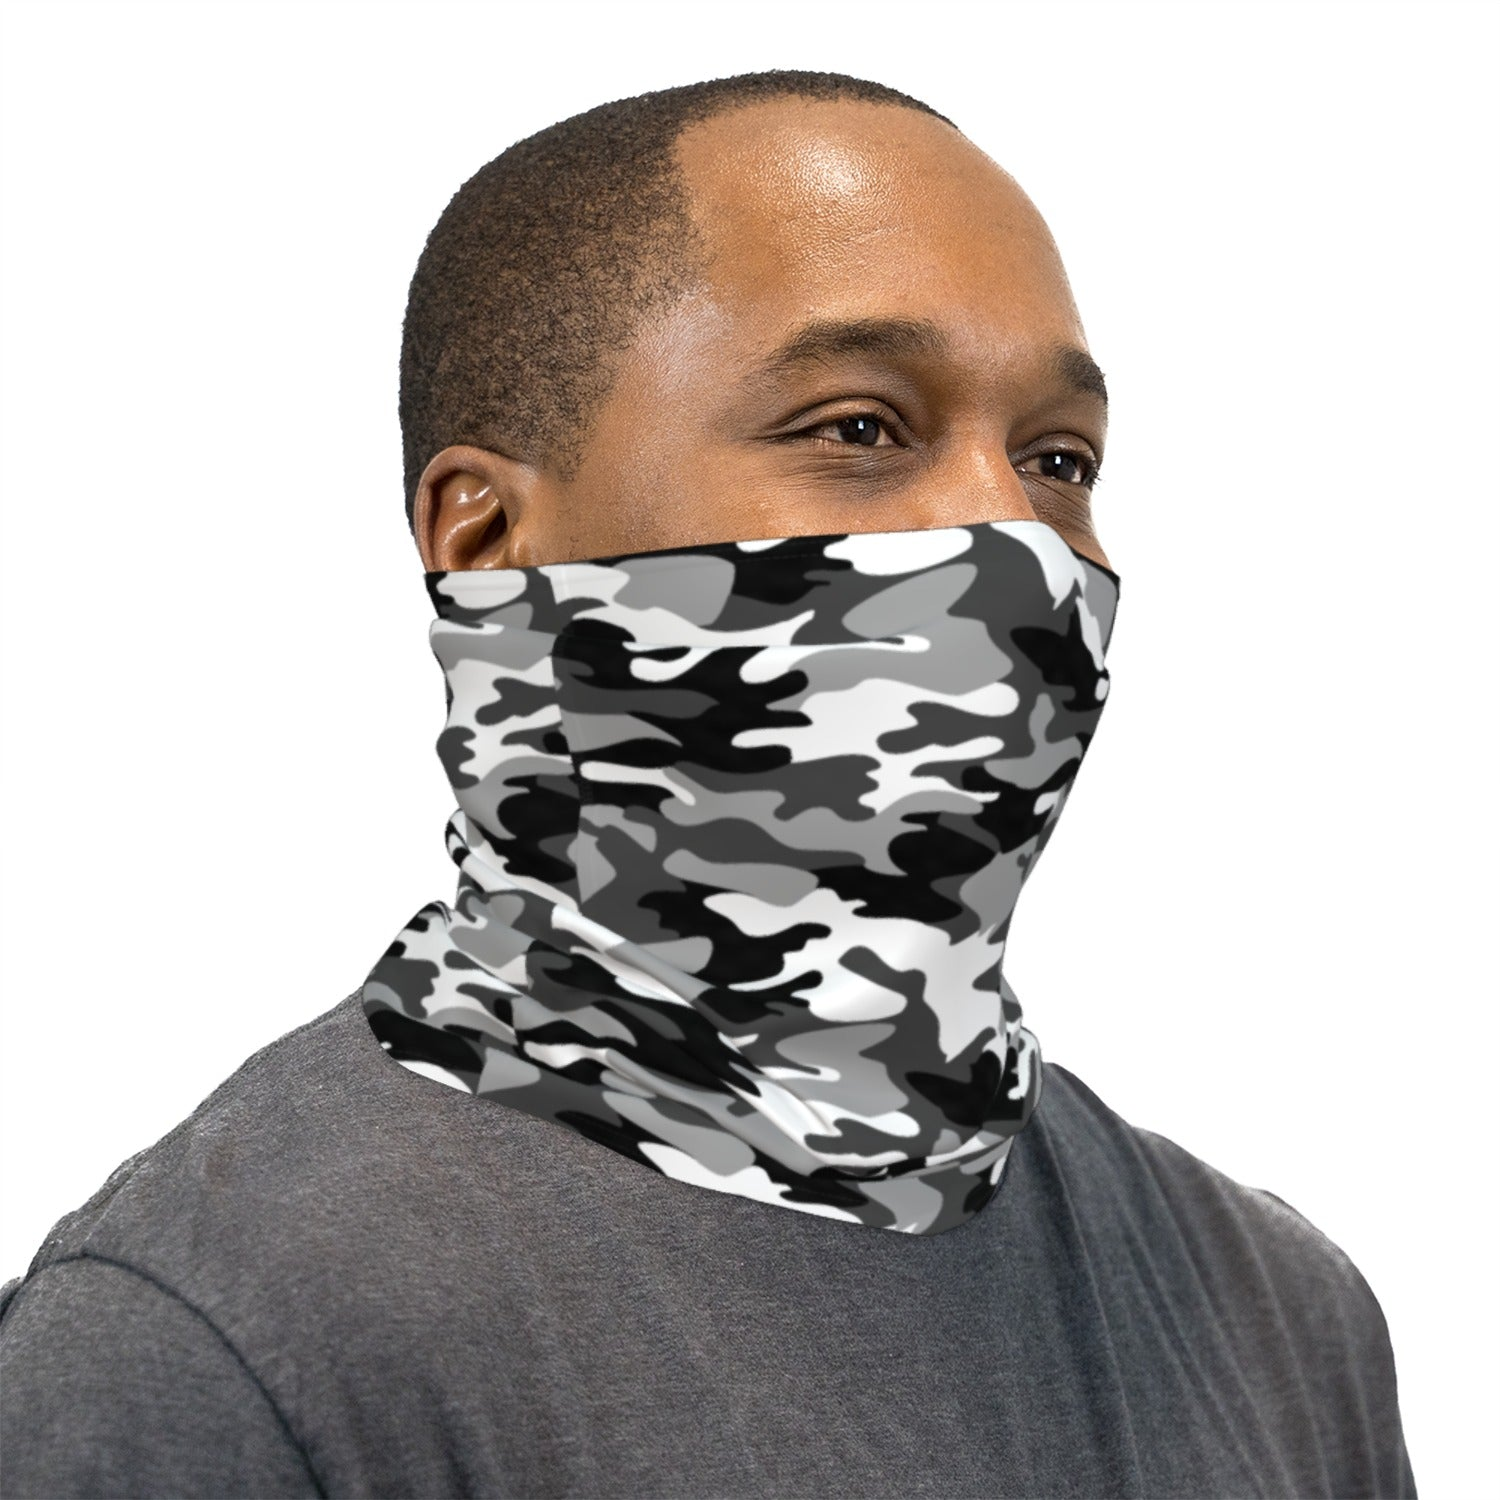 Black and White Camouflage Neck Gaiter Face Mask